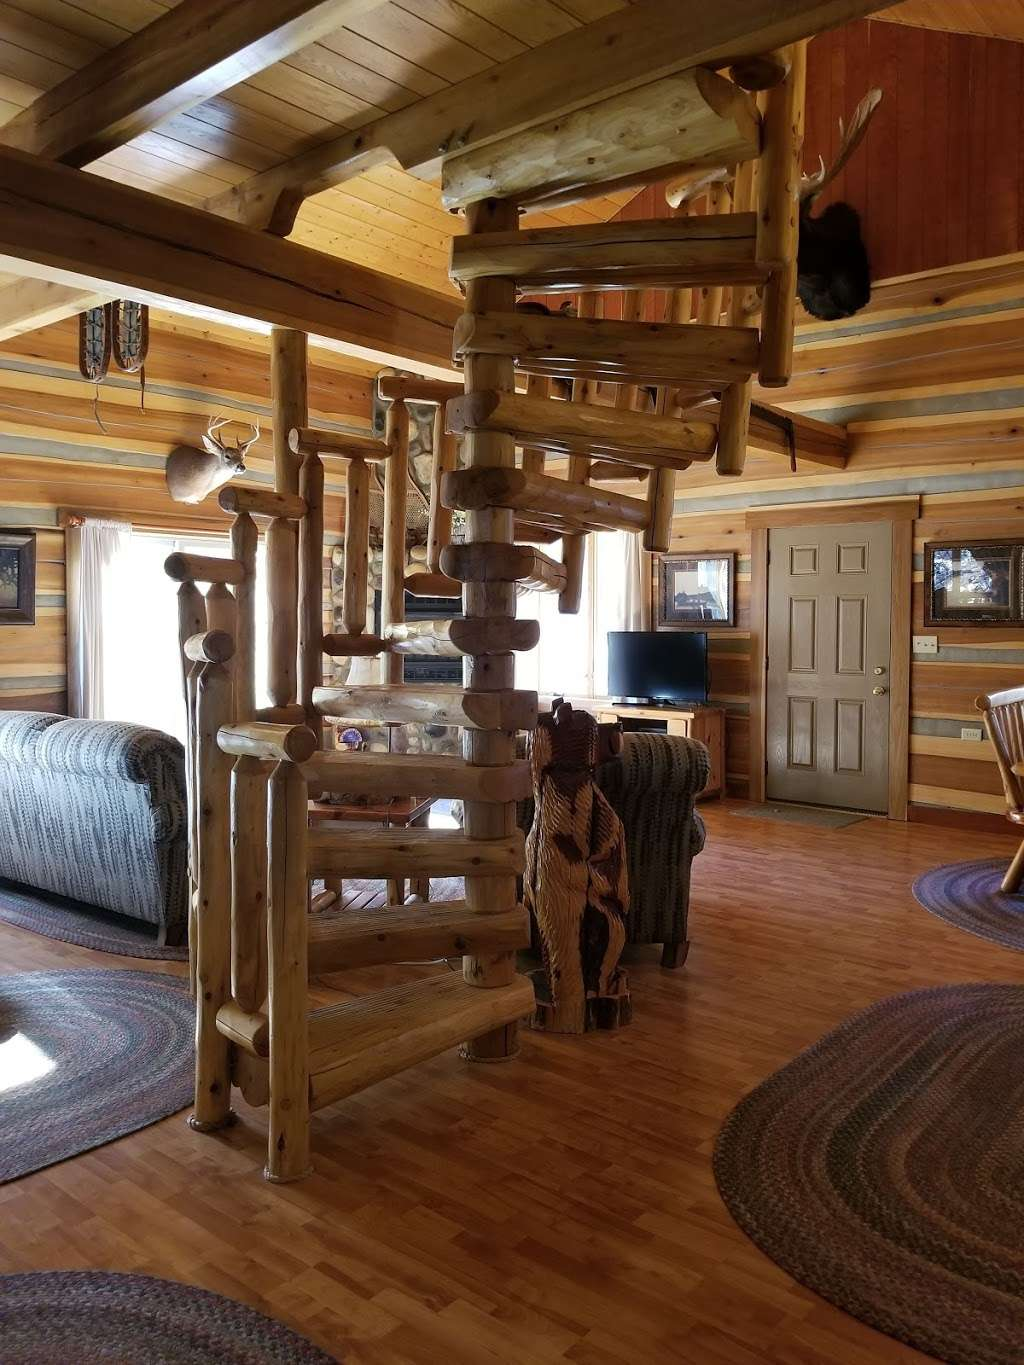 Antler Log Cabins - real estate agency    Photo 5 of 10   Address: 8747 E State Rd 45, Unionville, IN 47468, USA   Phone: (812) 339-6547